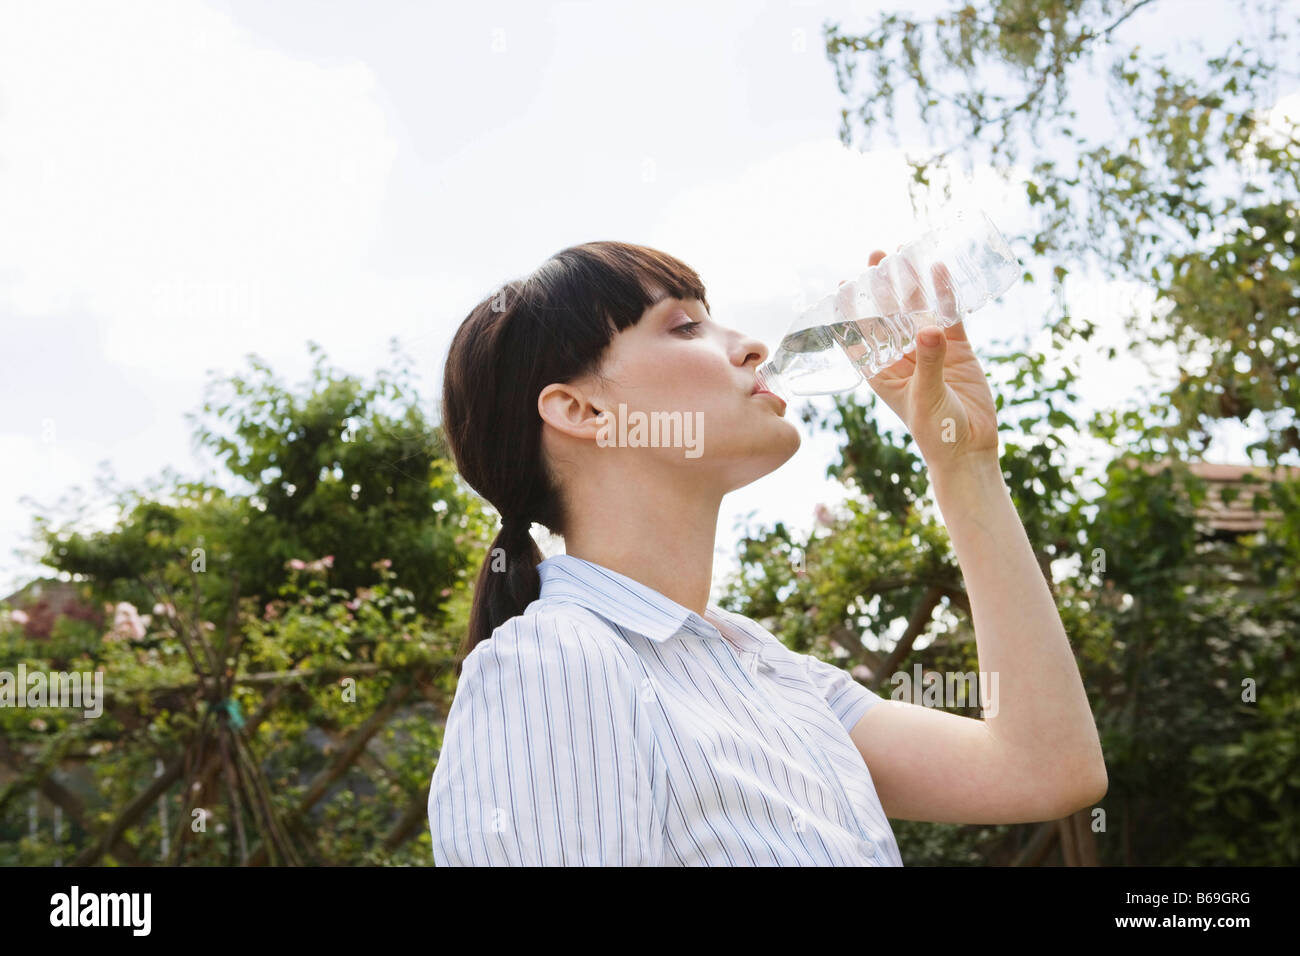 Woman drinking from water bottle in park - Stock Image